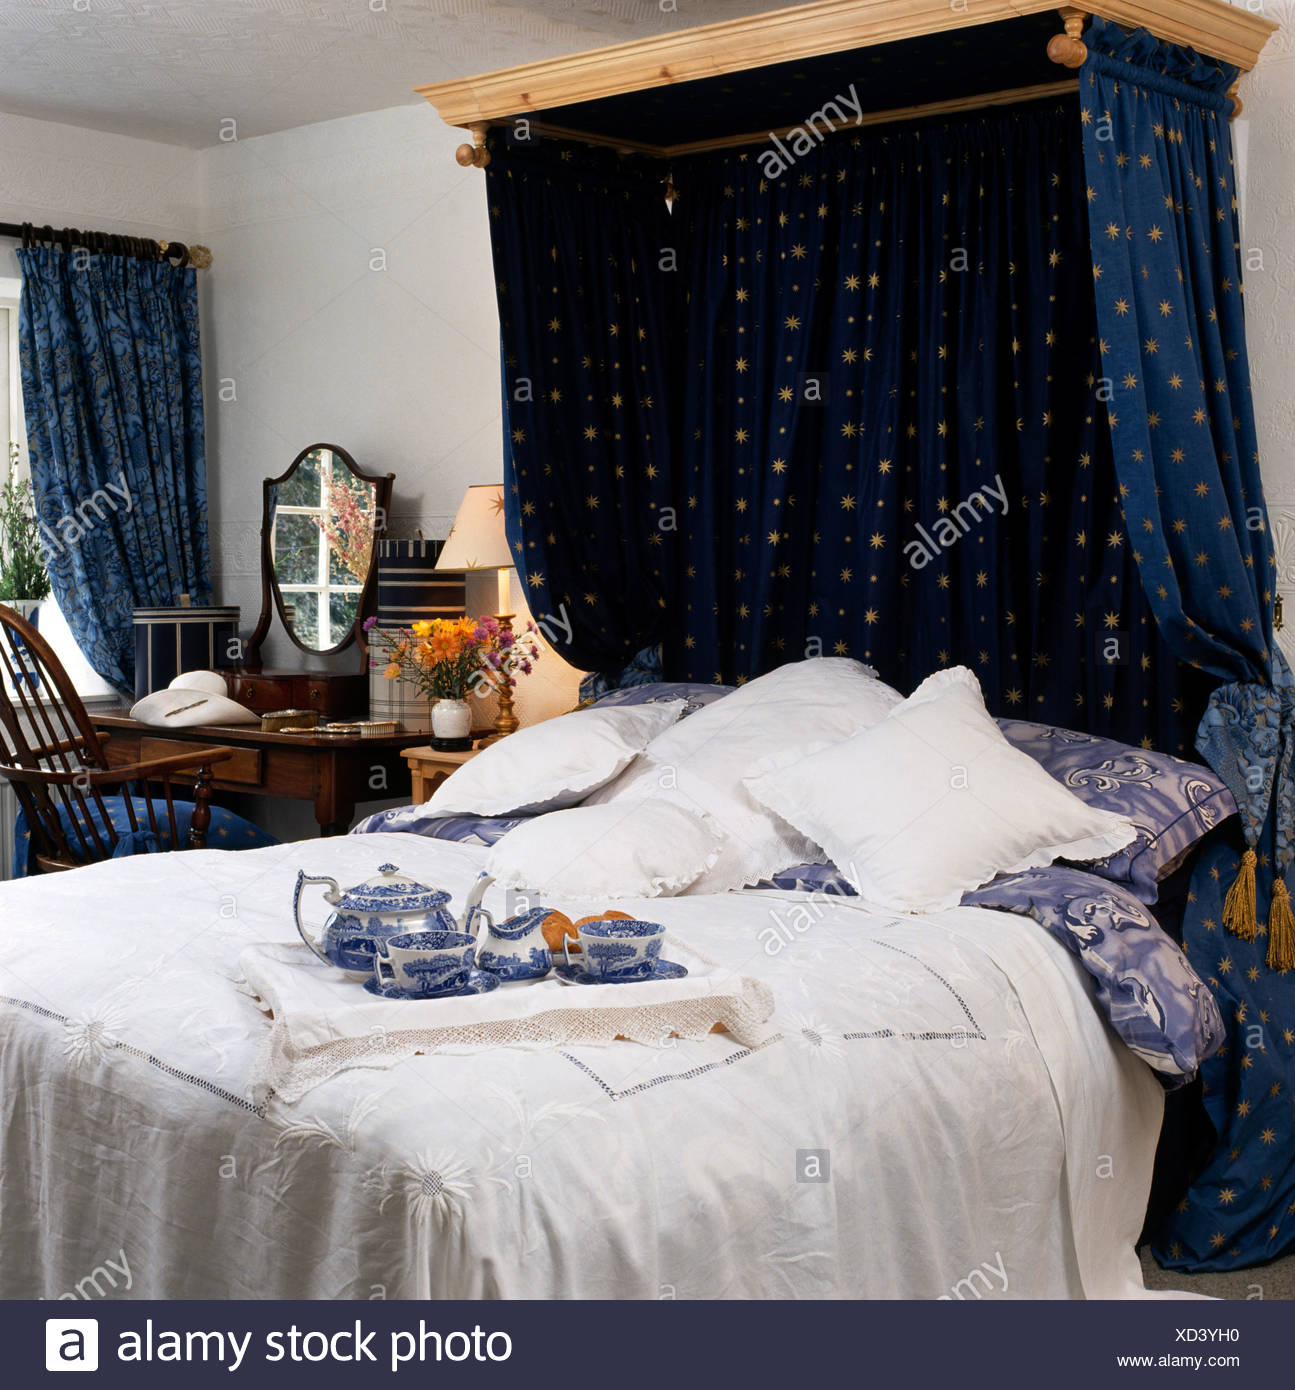 Blue Drapes On Half Tester Bed With White Cotton Victorian Bedspread